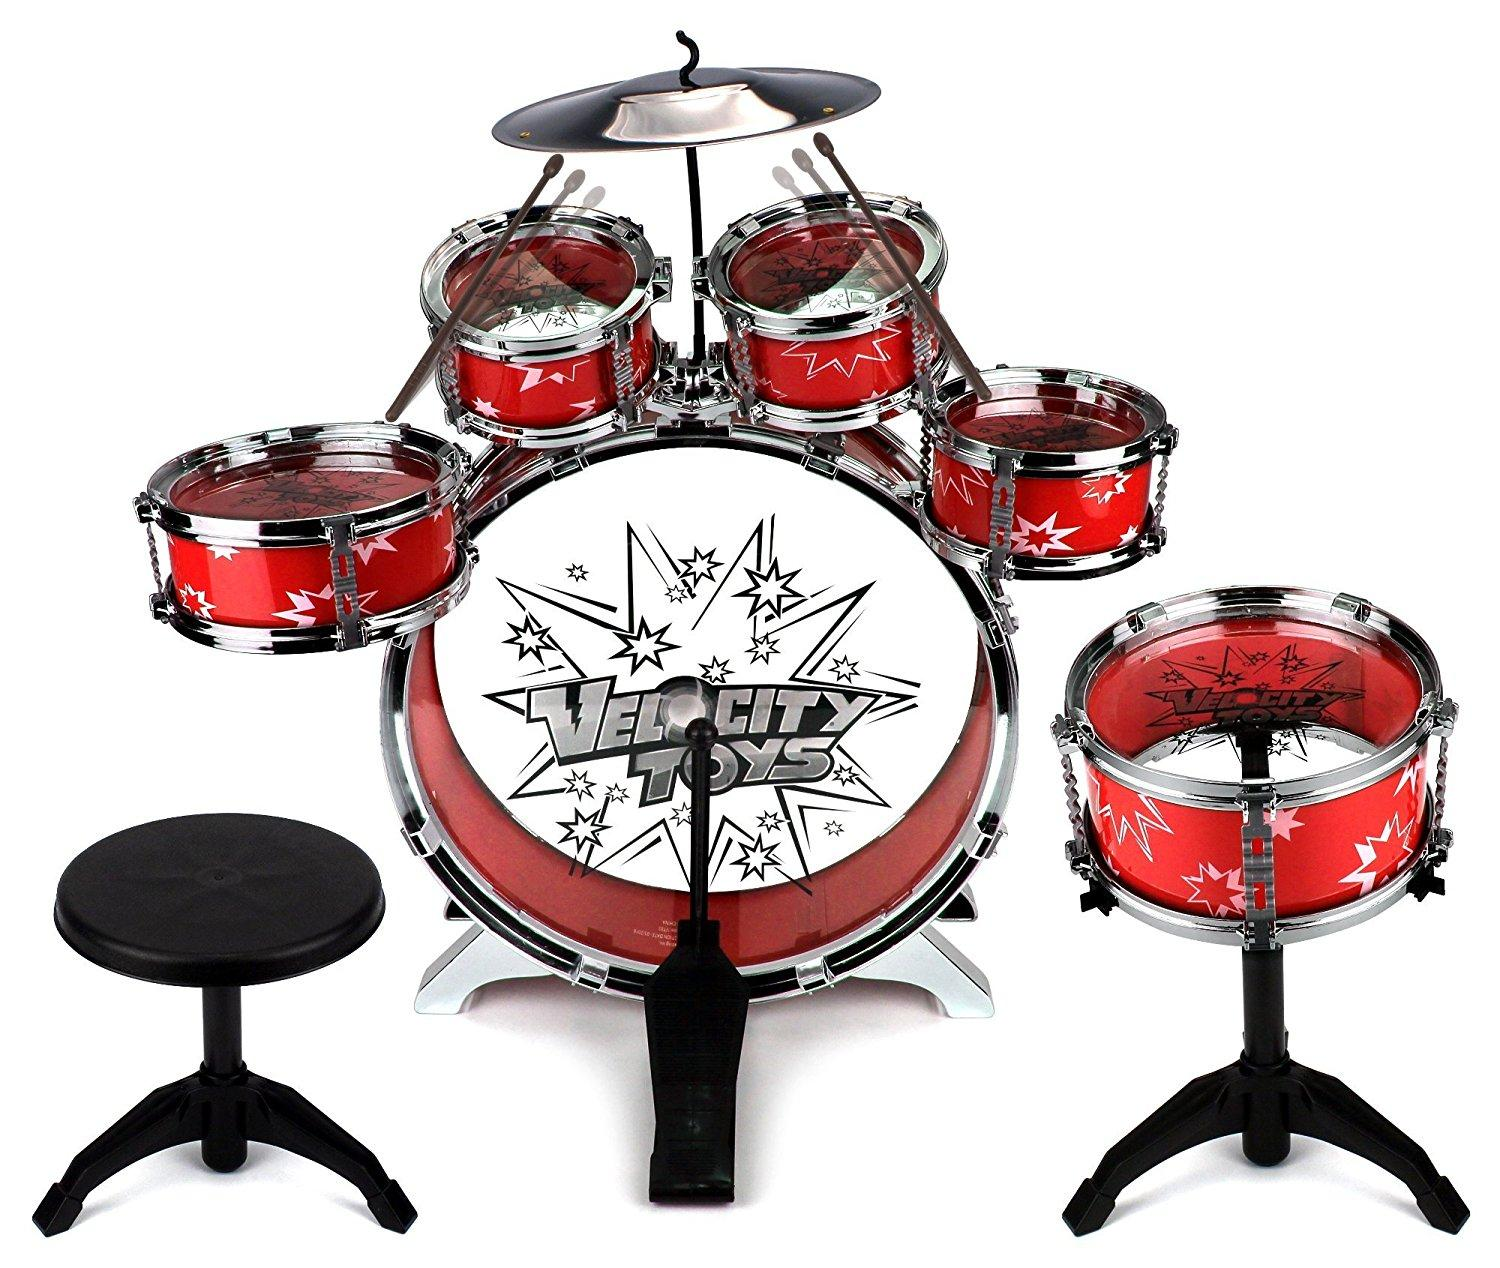 velocity toys 11 piece children 39 s kid 39 s musical instrument drum play set w 6 drums. Black Bedroom Furniture Sets. Home Design Ideas